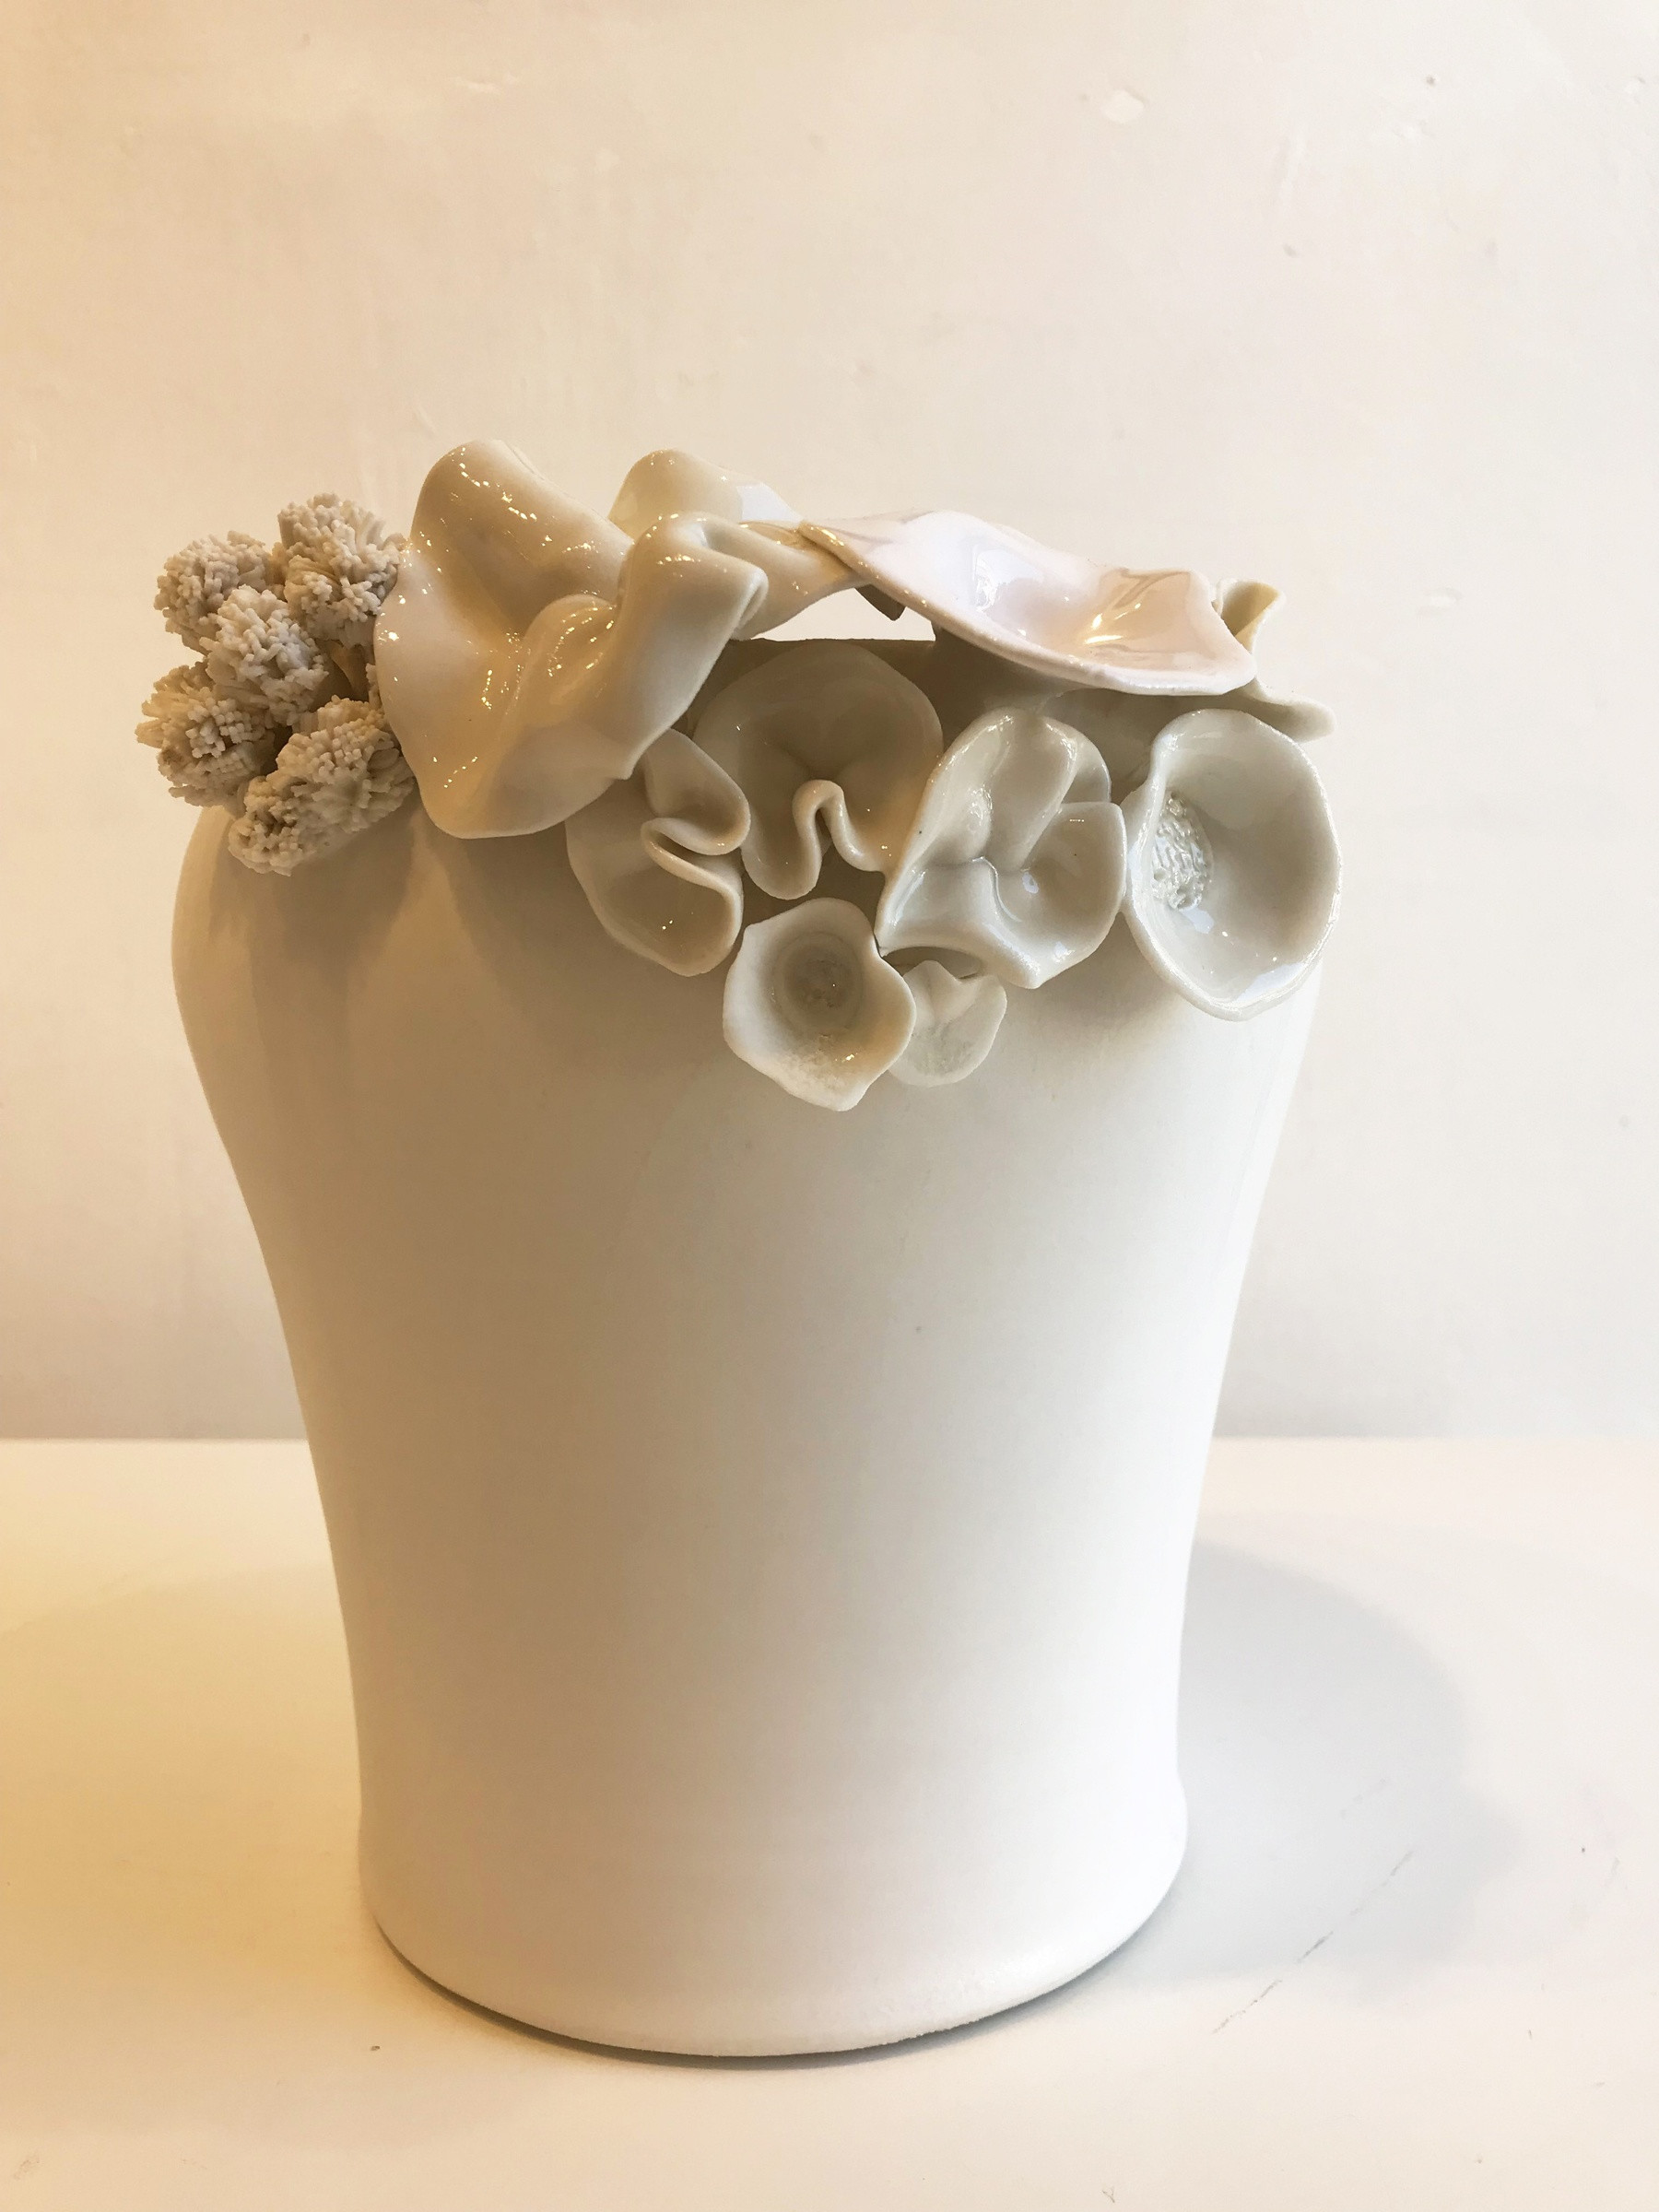 ivory ceramic vase of emma jagare large flower vase various flowers and coral on one with regard to large flower vase various flowers and coral on one side